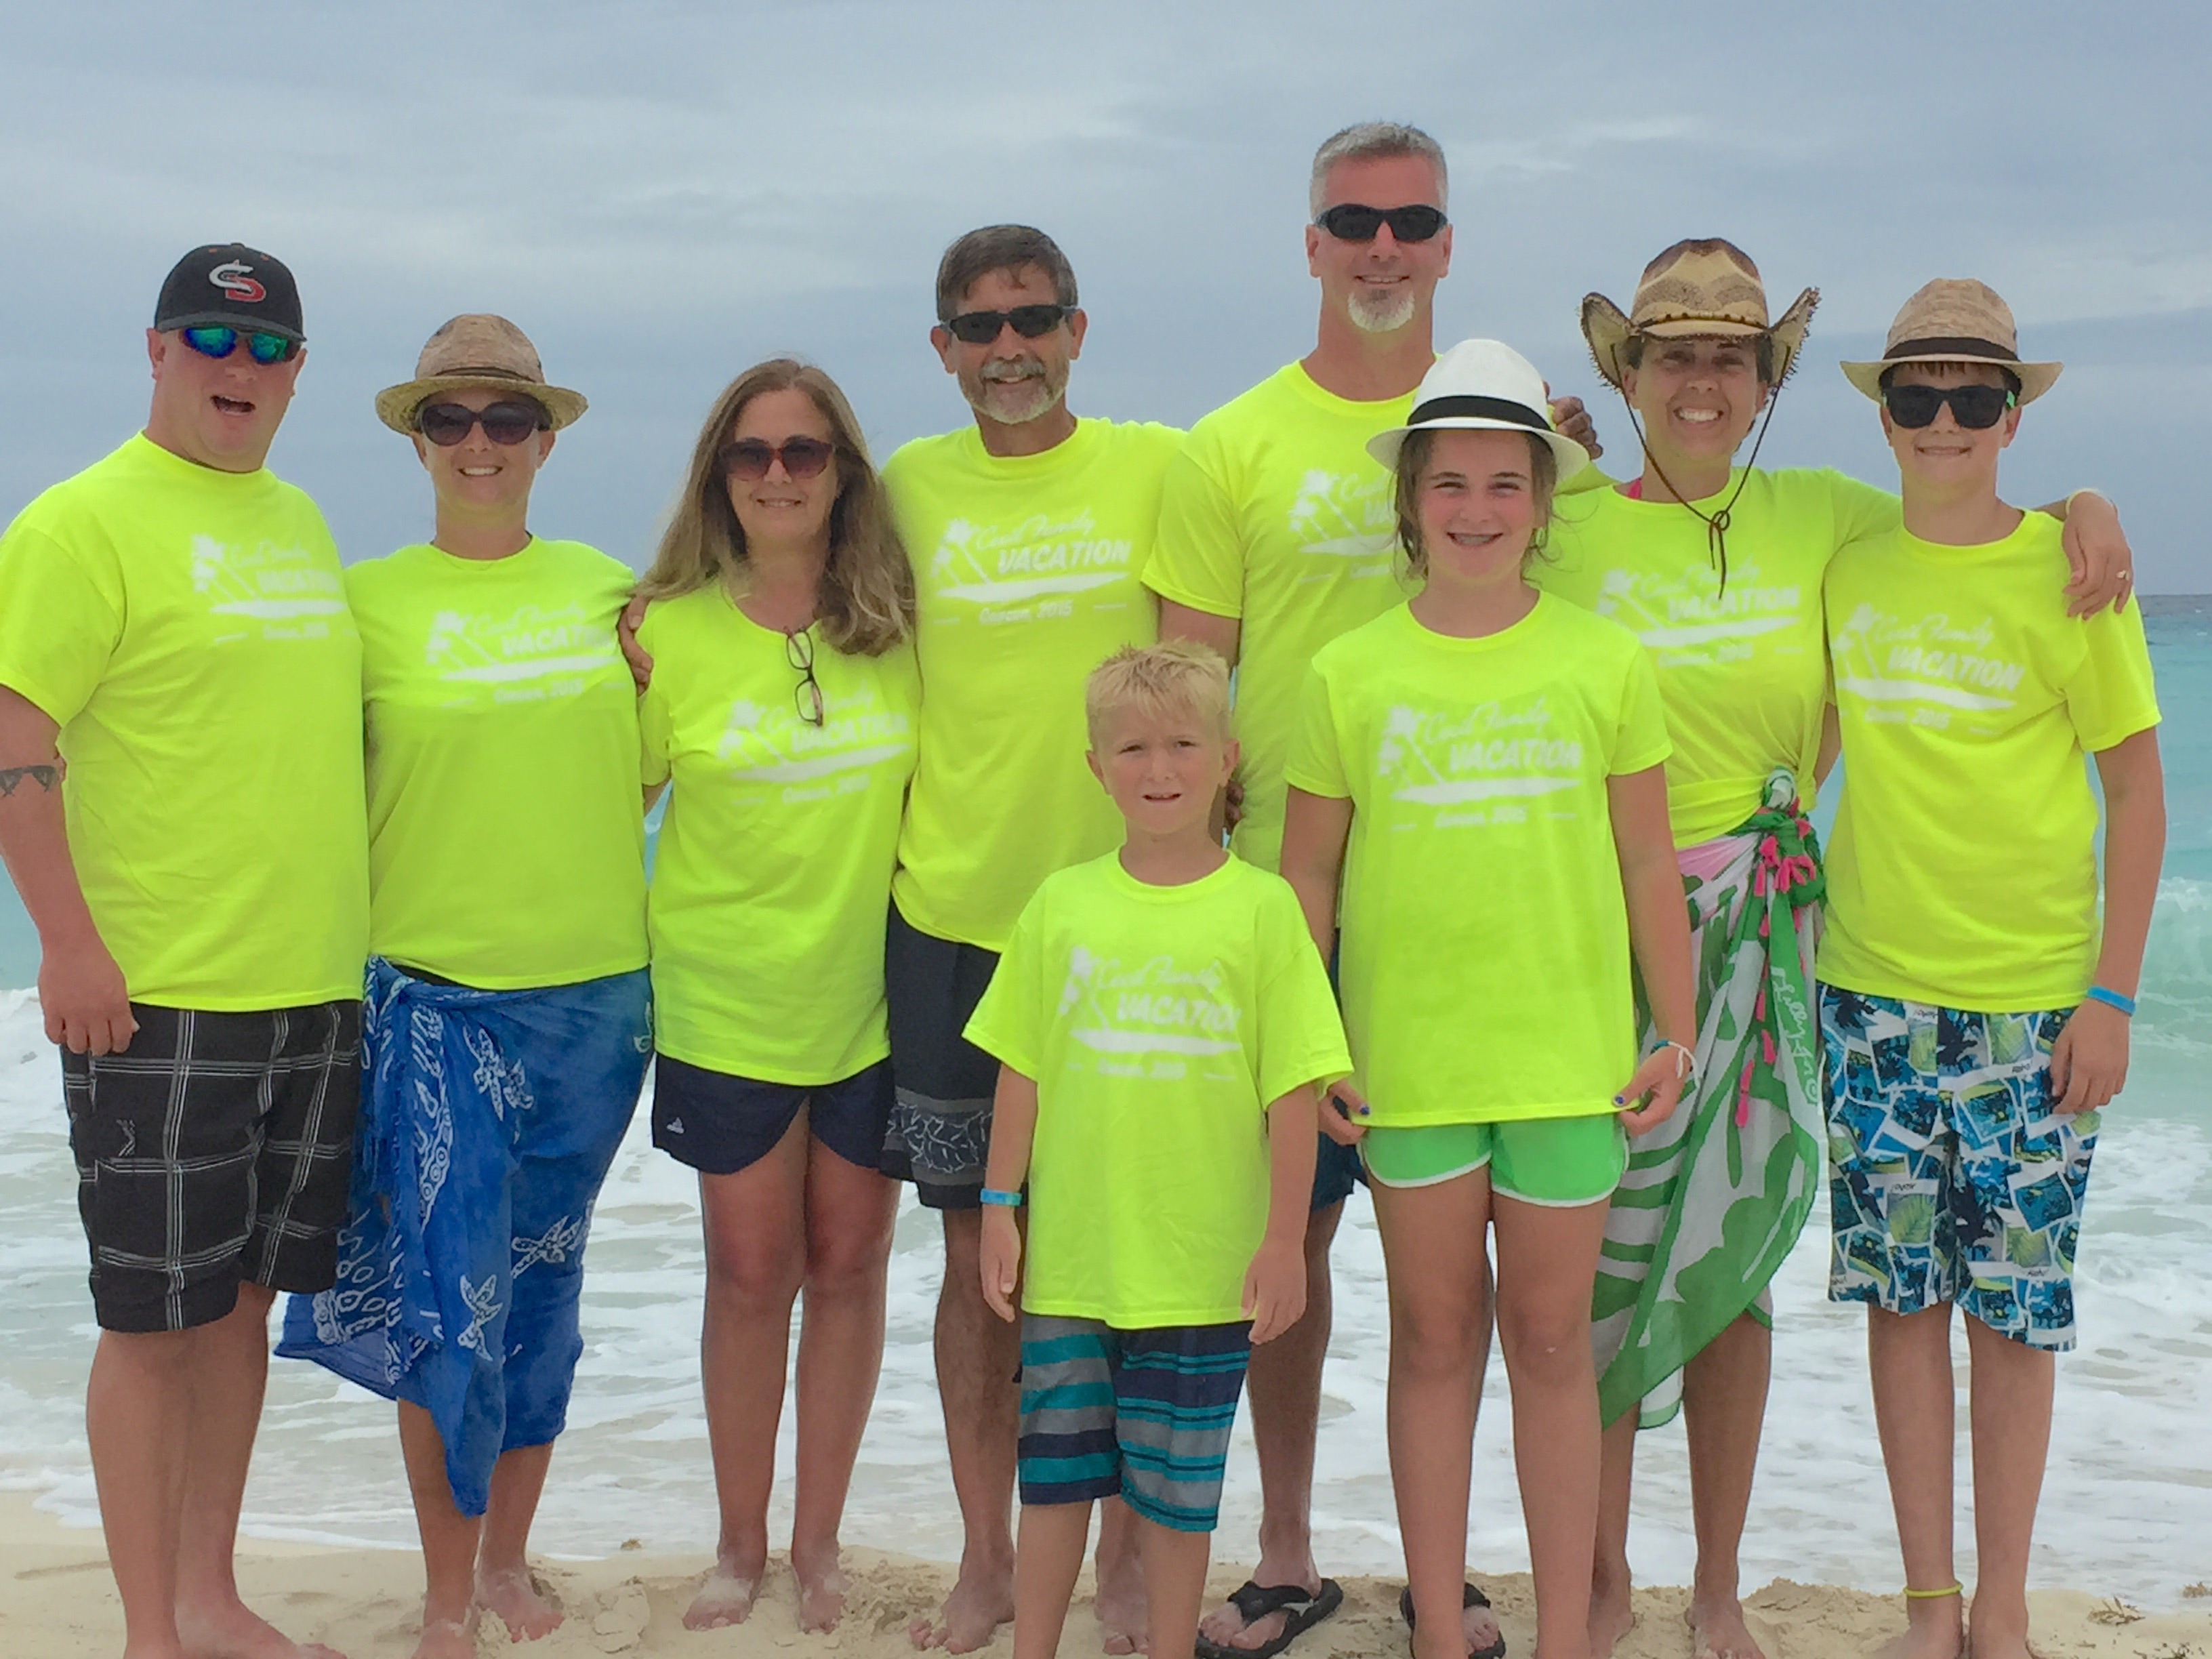 7e256038f Custom T-Shirts for Cancun Family Vacation - Shirt Design Ideas